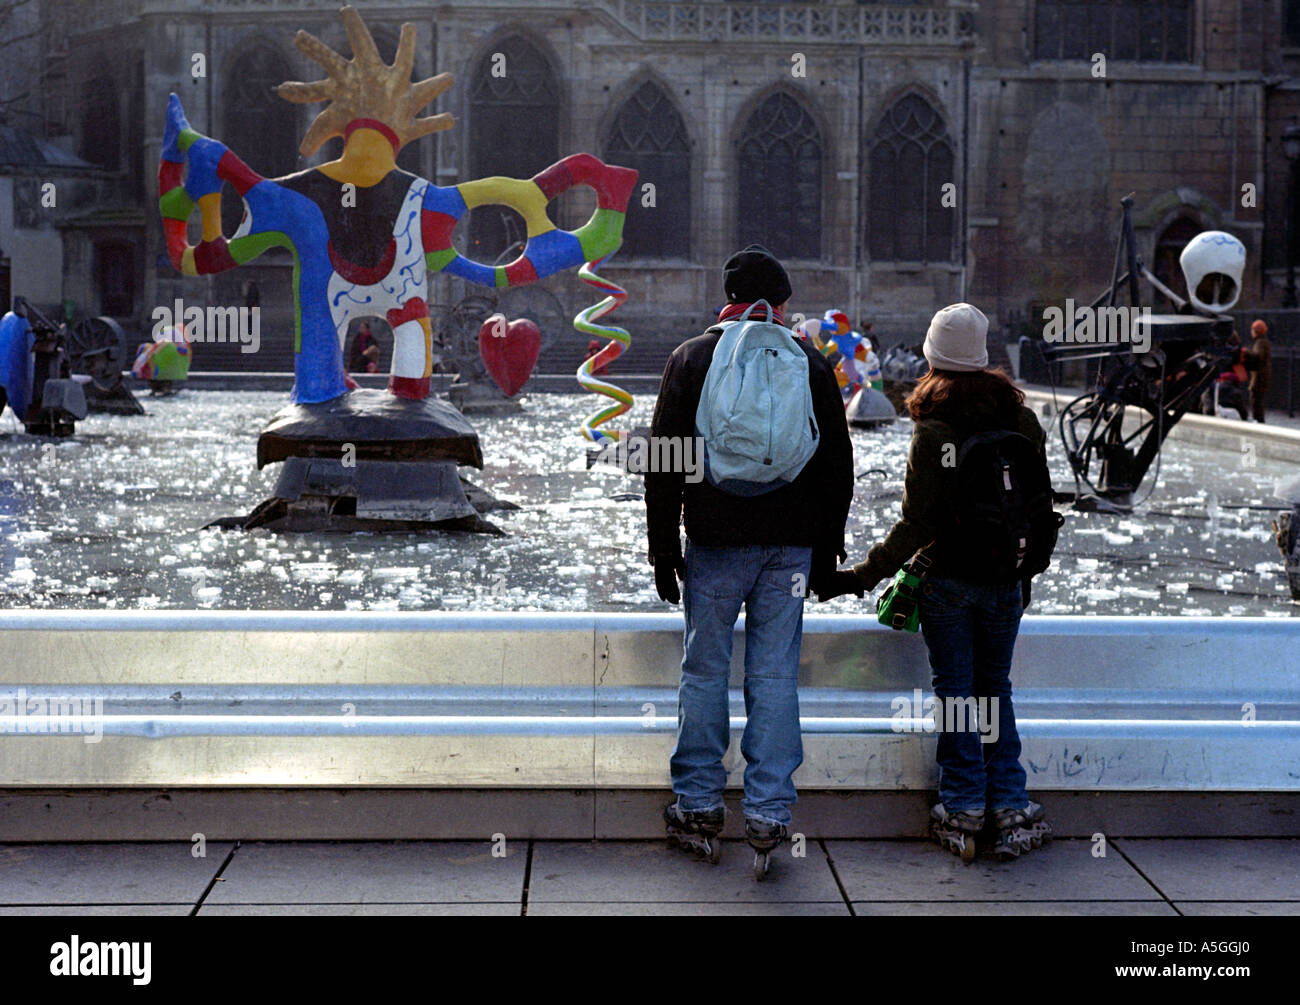 Visitors on roller blades in the Beaubourg area Stock Photo